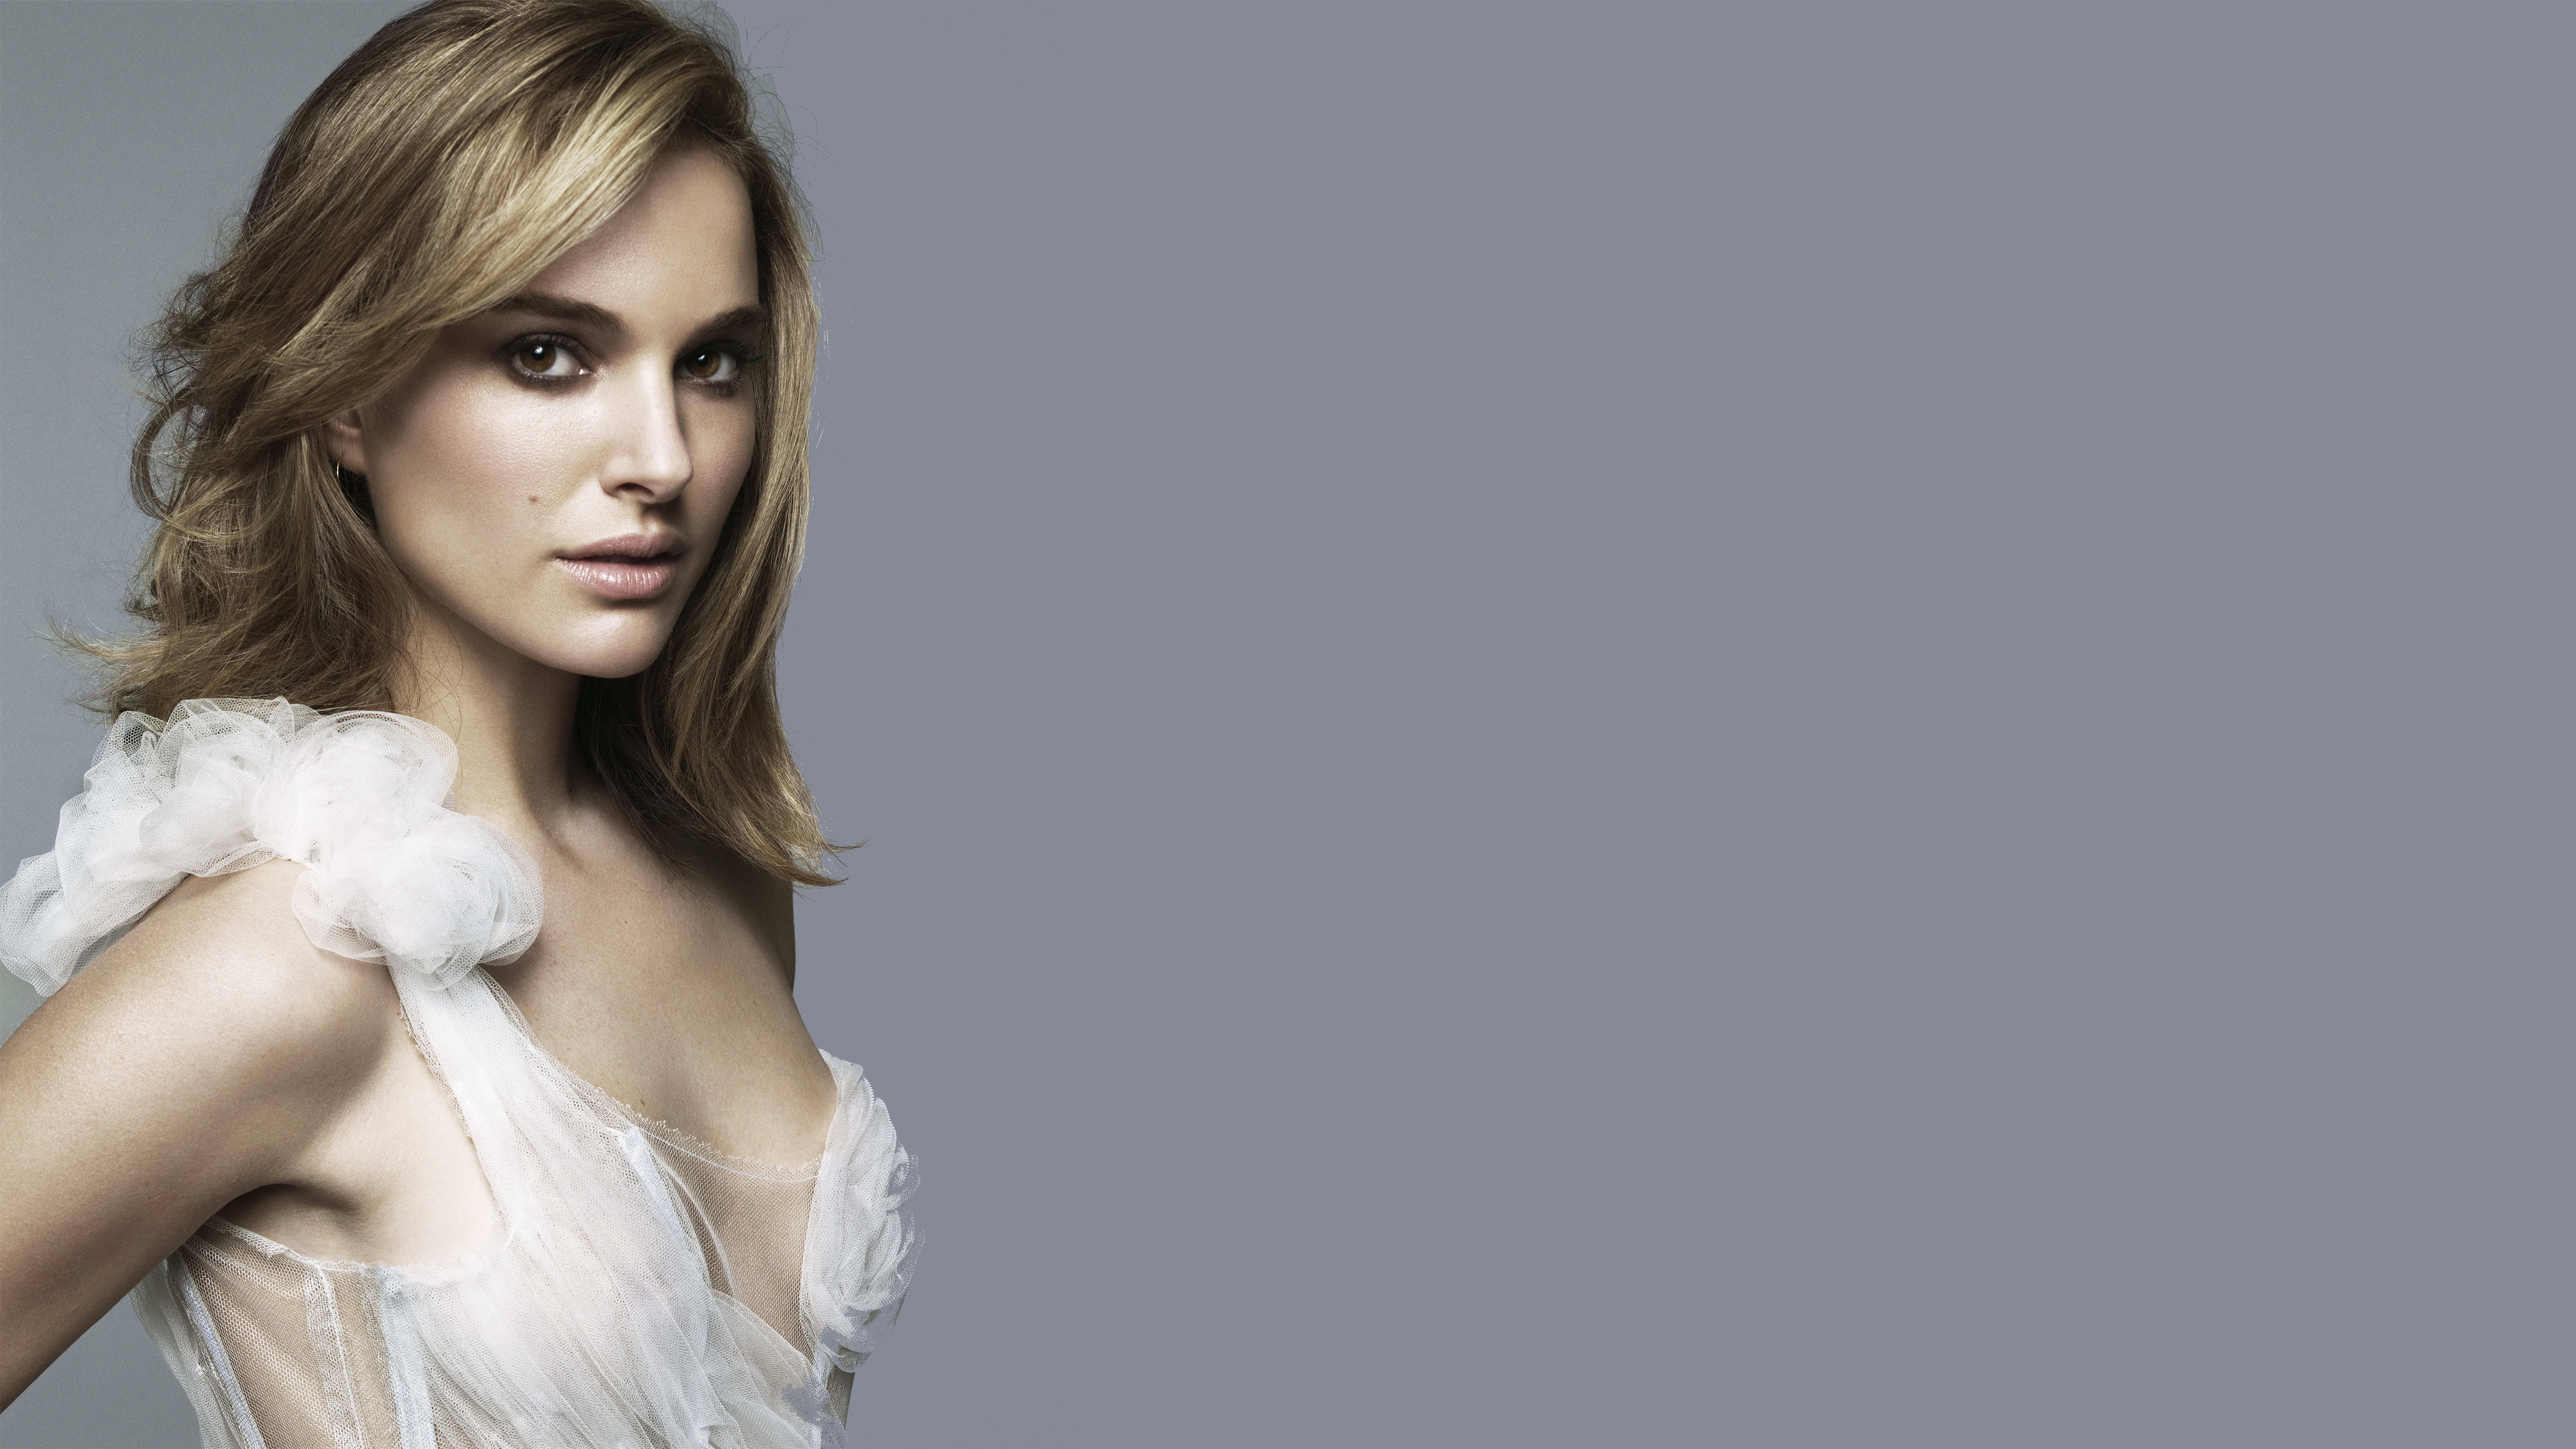 natalie portman 5k 1536863854 - Natalie Portman 5k - natalie portman wallpapers, hd-wallpapers, girls wallpapers, celebrities wallpapers, 5k wallpapers, 4k-wallpapers